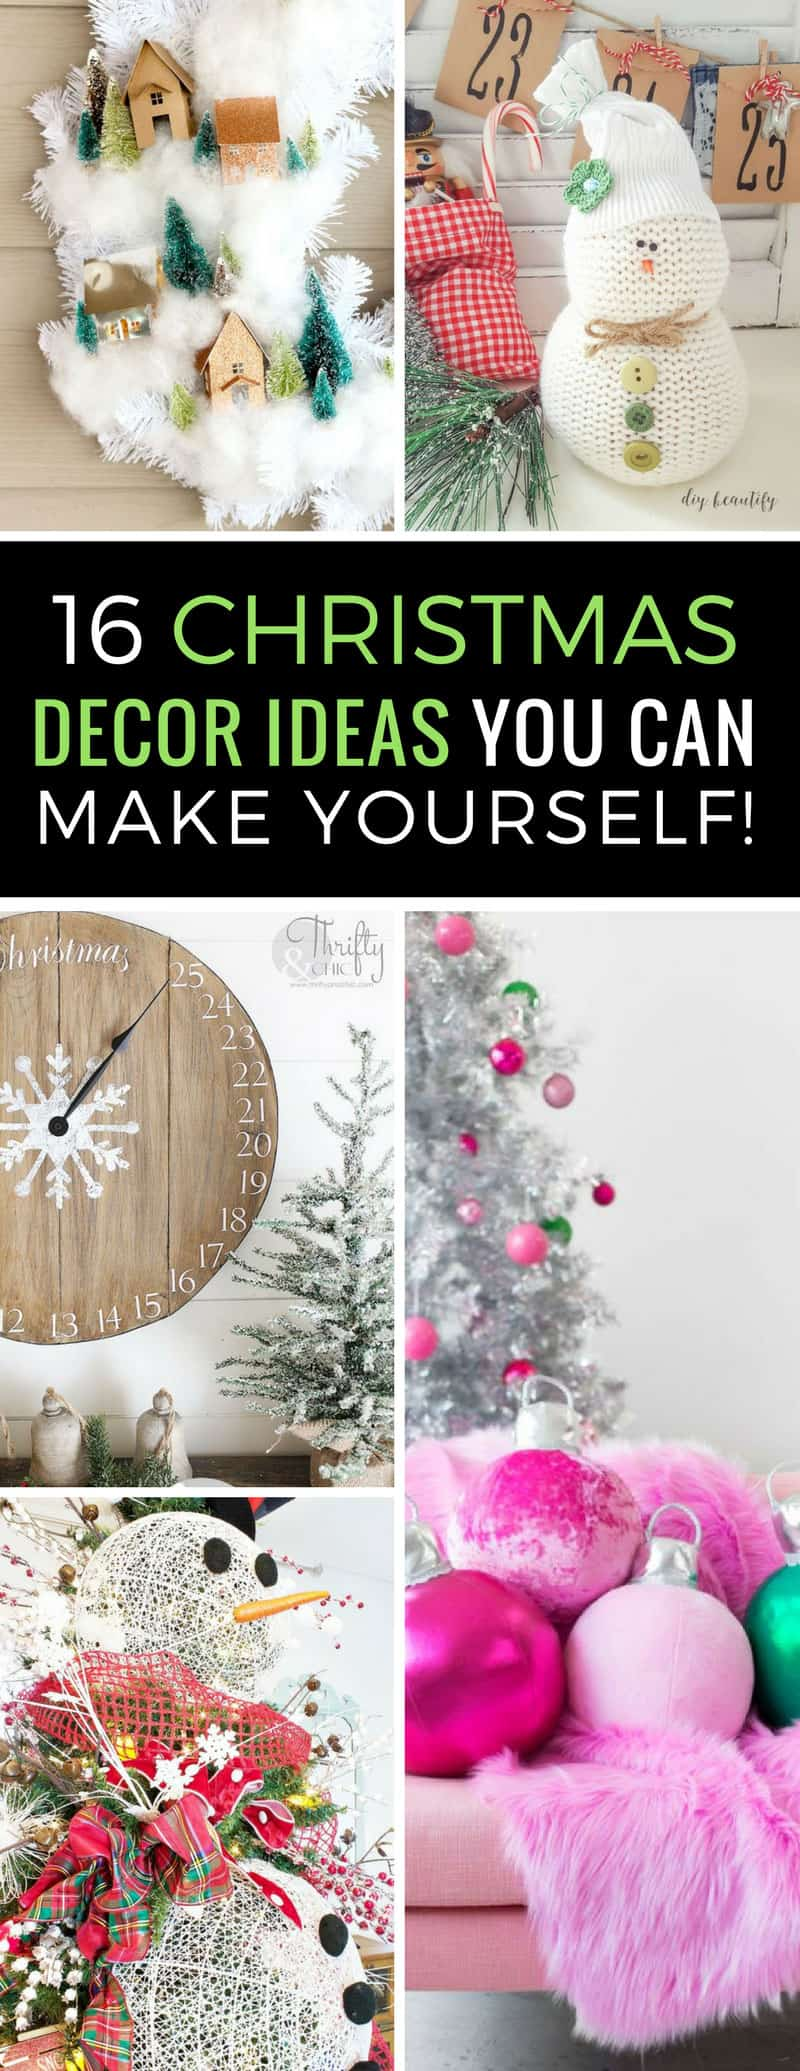 Want to festive up your home this Christmas with items you can make yourself? These DIY Christmas decor ideas are sure to impress your guests! | Christmas Decor | DIY | Crafts | Decorations | Just Bright Ideas